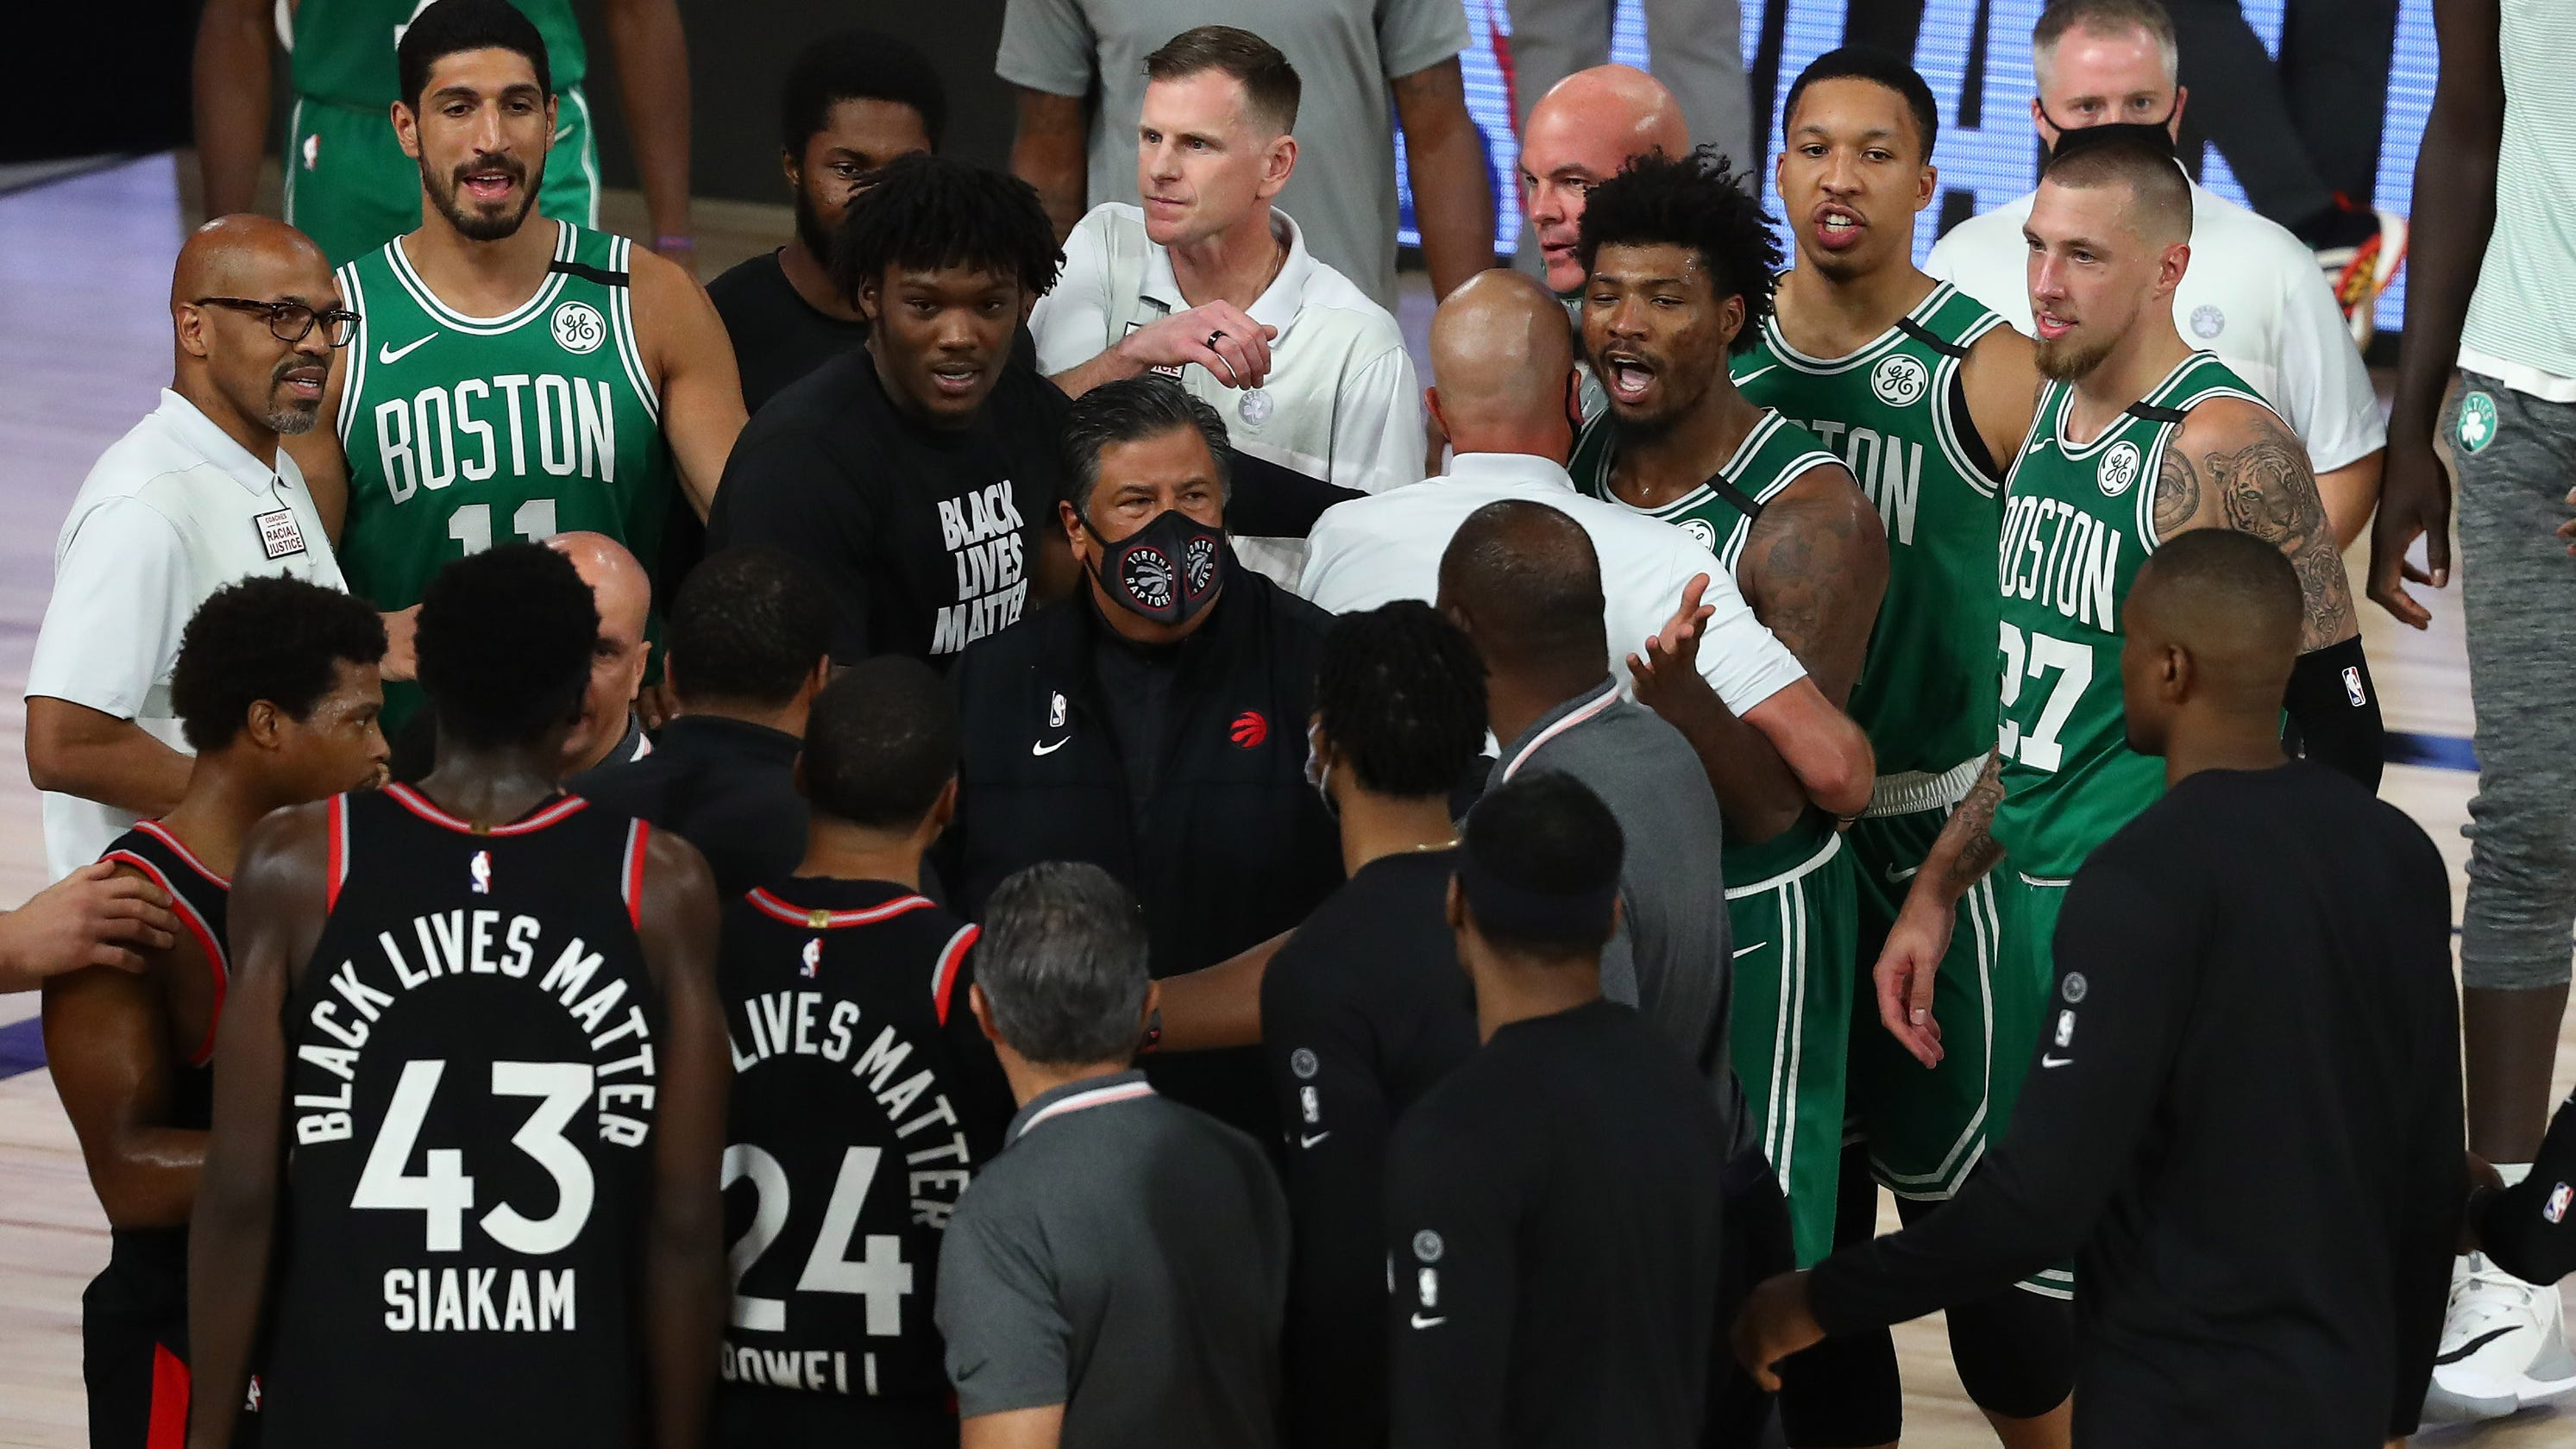 Celtics, Raptors hate each other, and sharing hotel, there's no escape